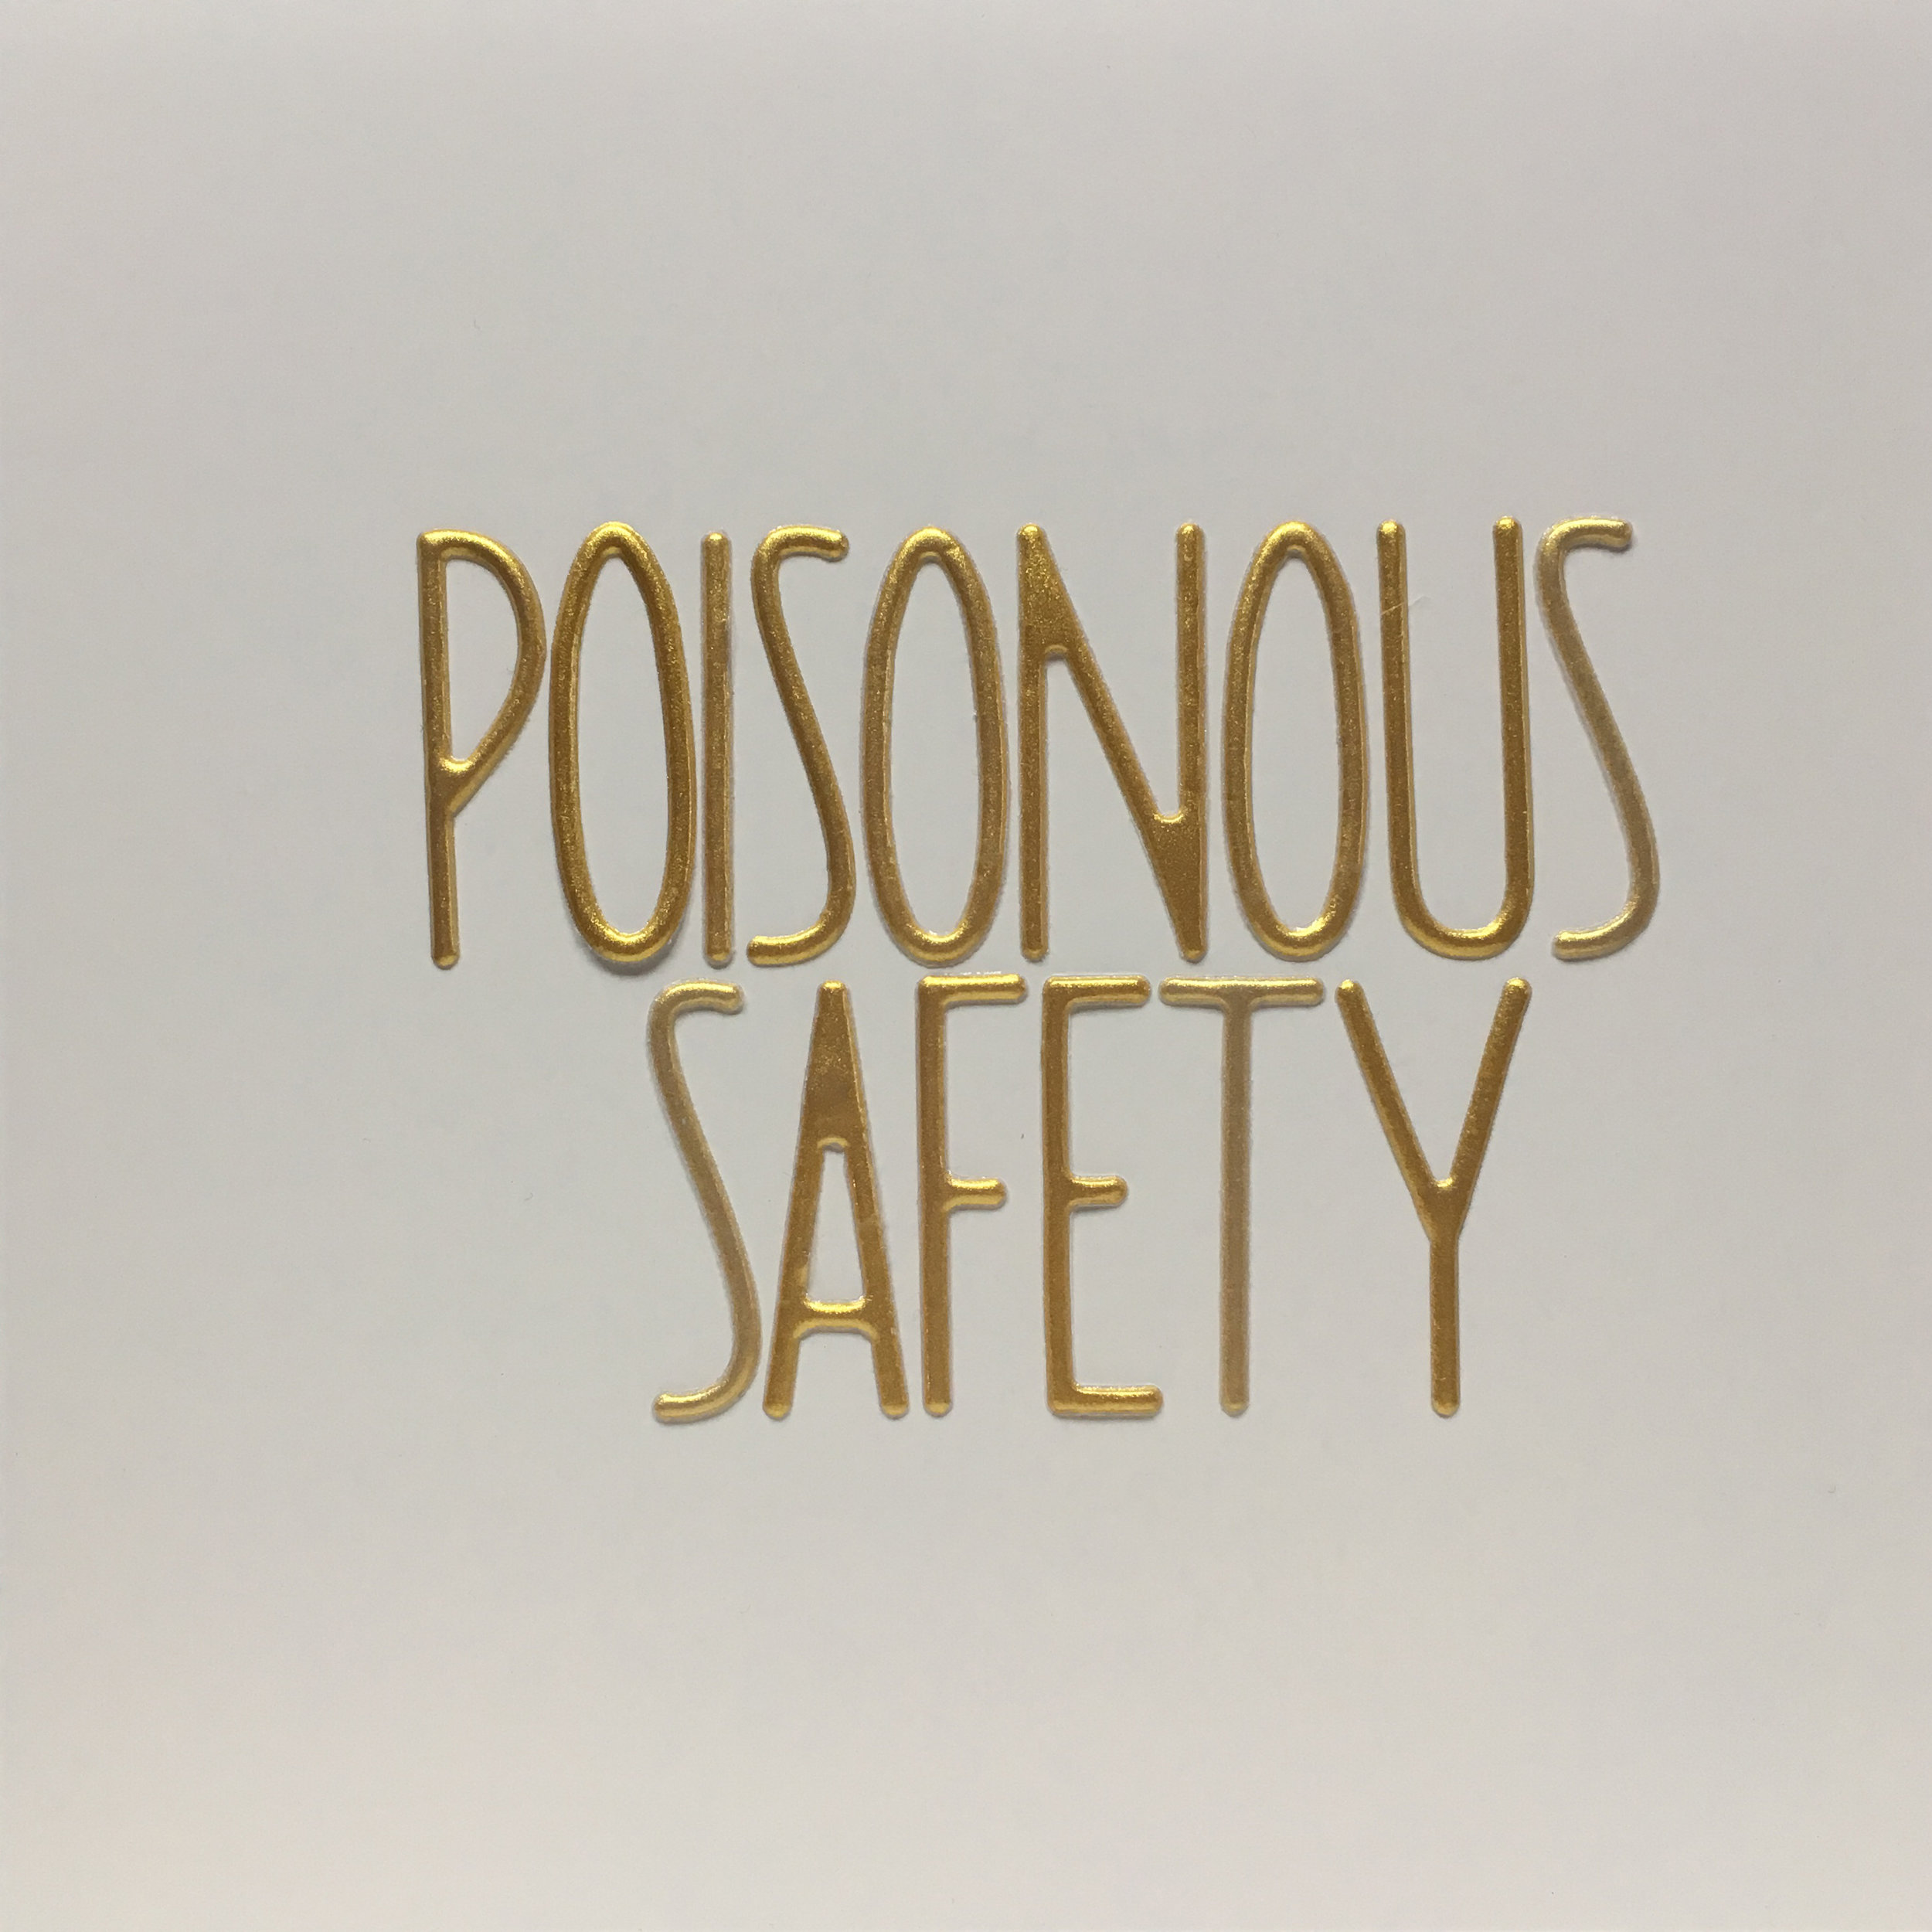 poisonous safety.jpg